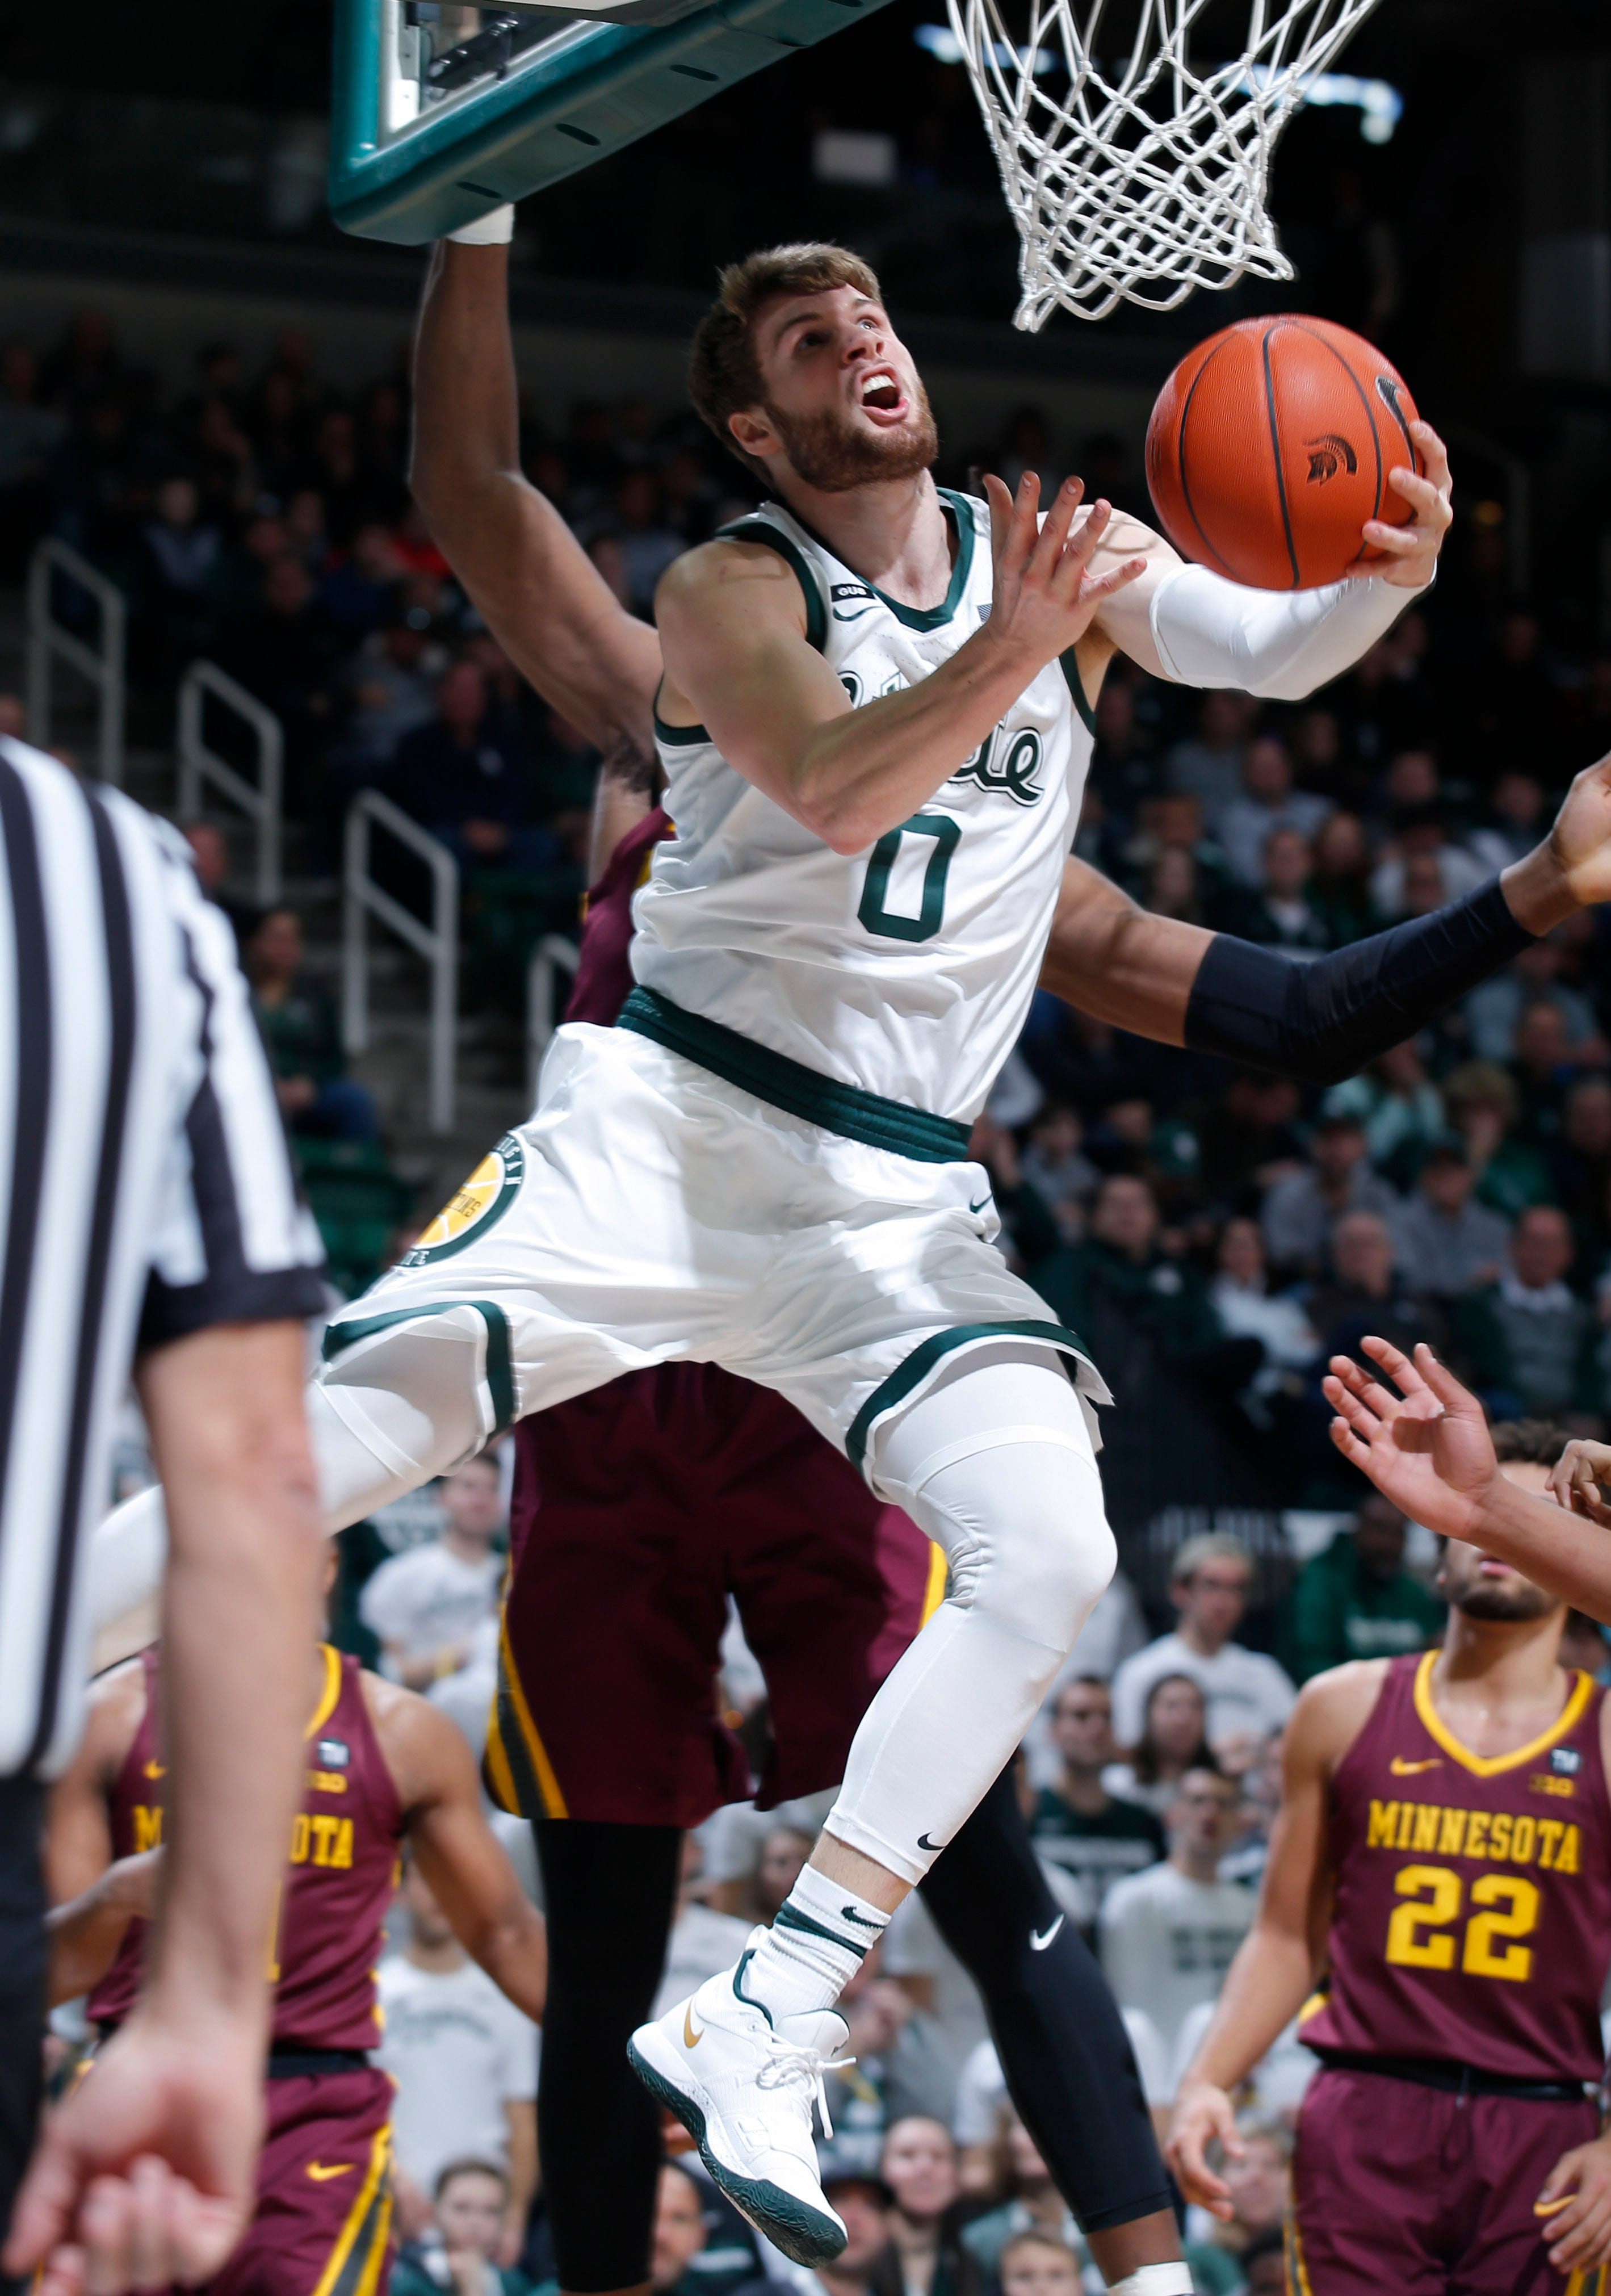 Michigan State's Kyle Ahrens goes to the basket against Minnesota, Feb. 9, in East Lansing.